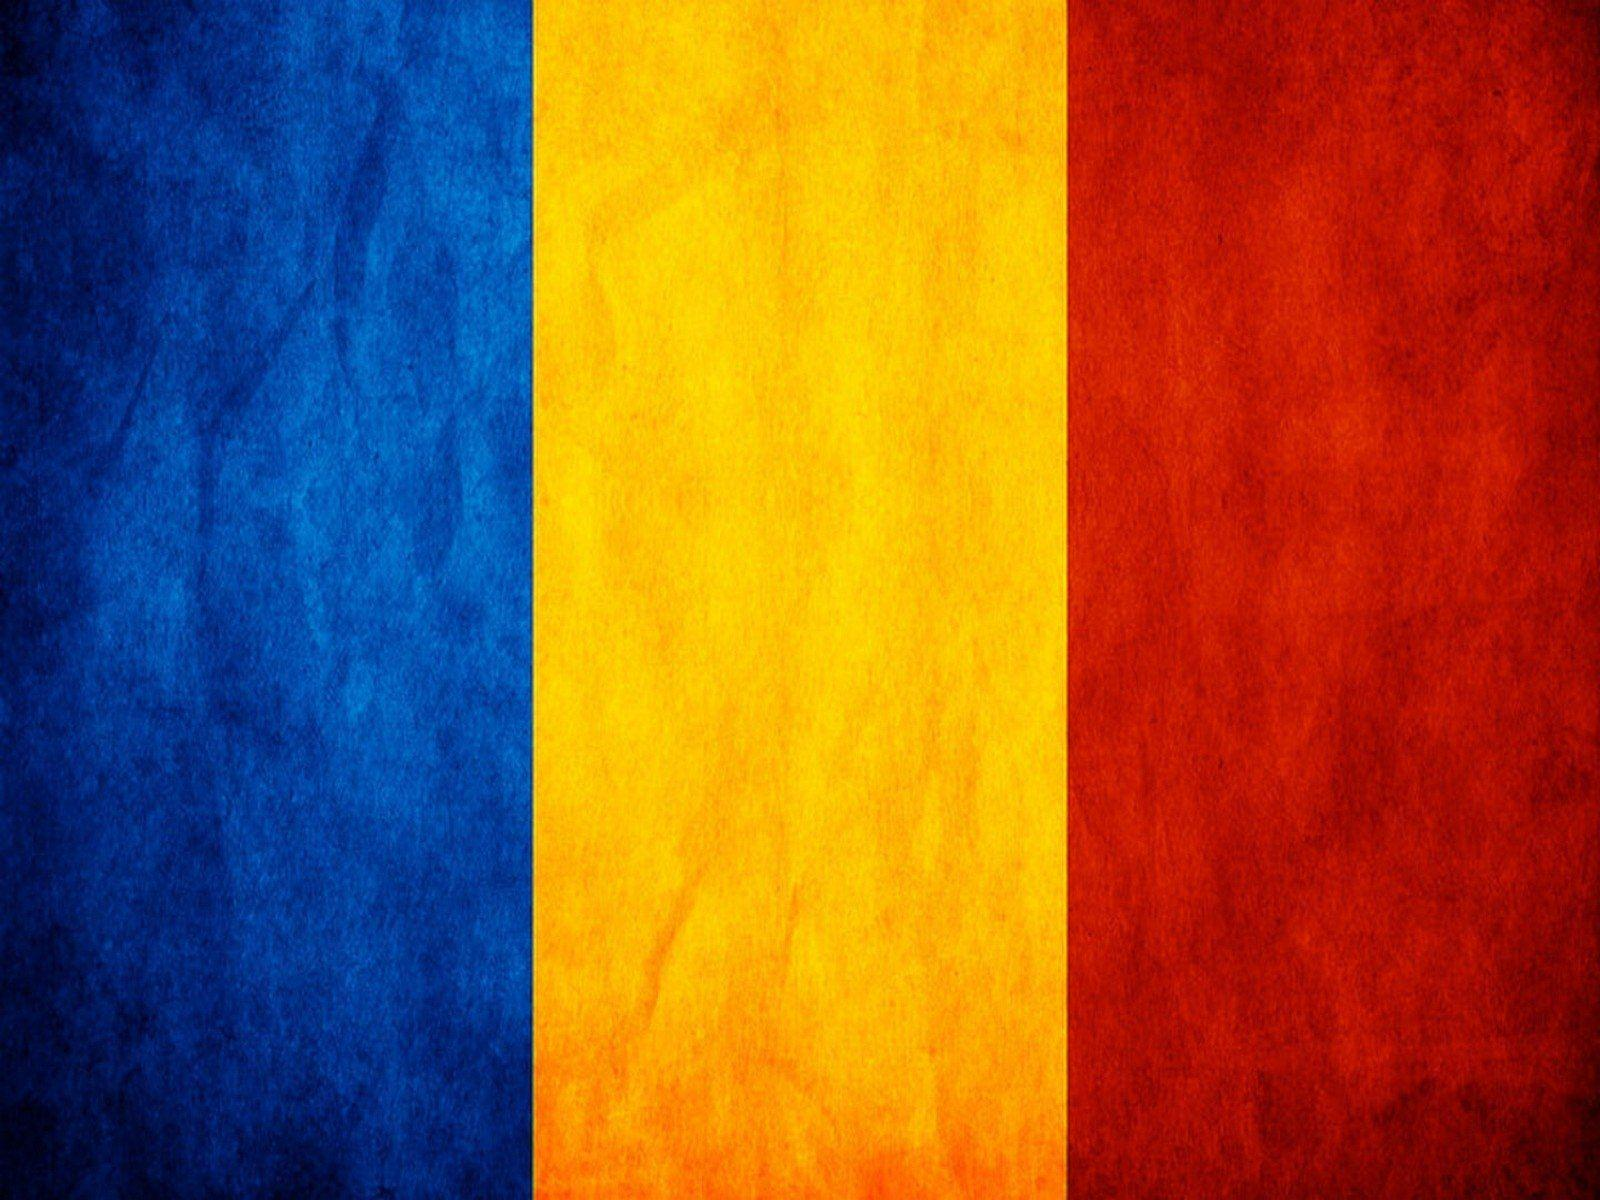 3 Flag Of Romania HD Wallpapers | Backgrounds - Wallpaper Abyss